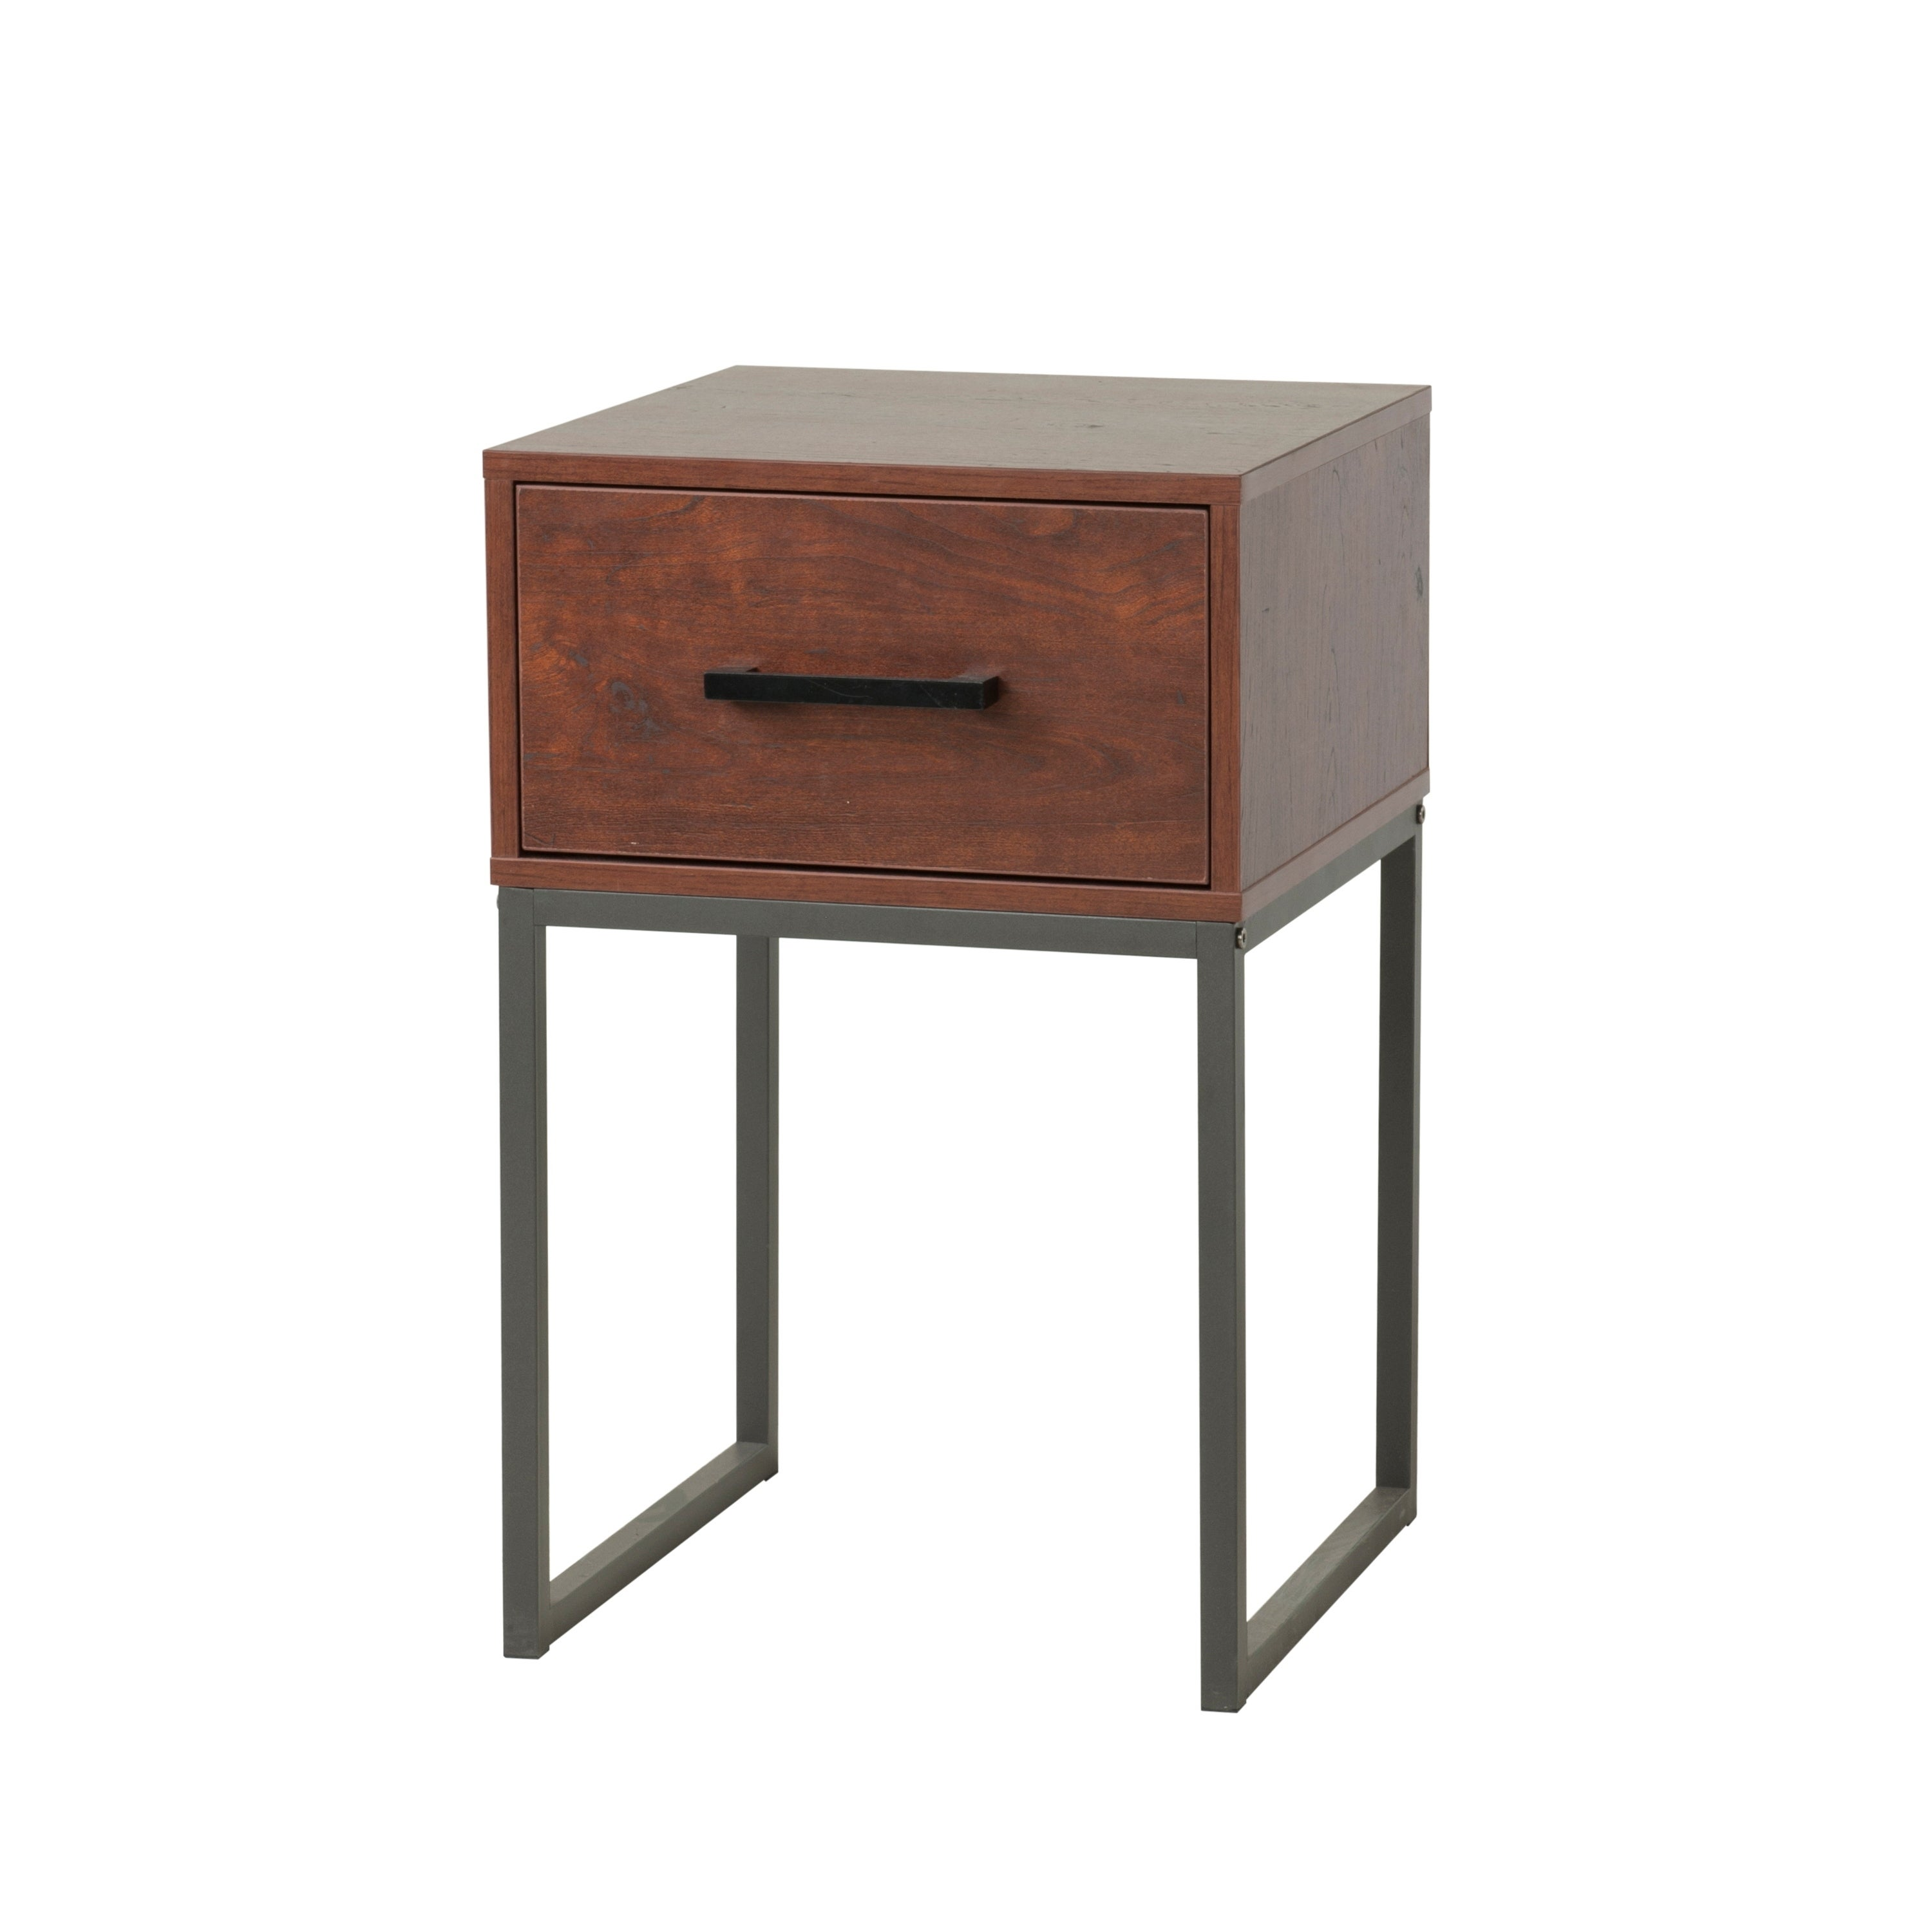 Homestar Jefferson Nightstand with 1 drawer in Reclaimed Cherry